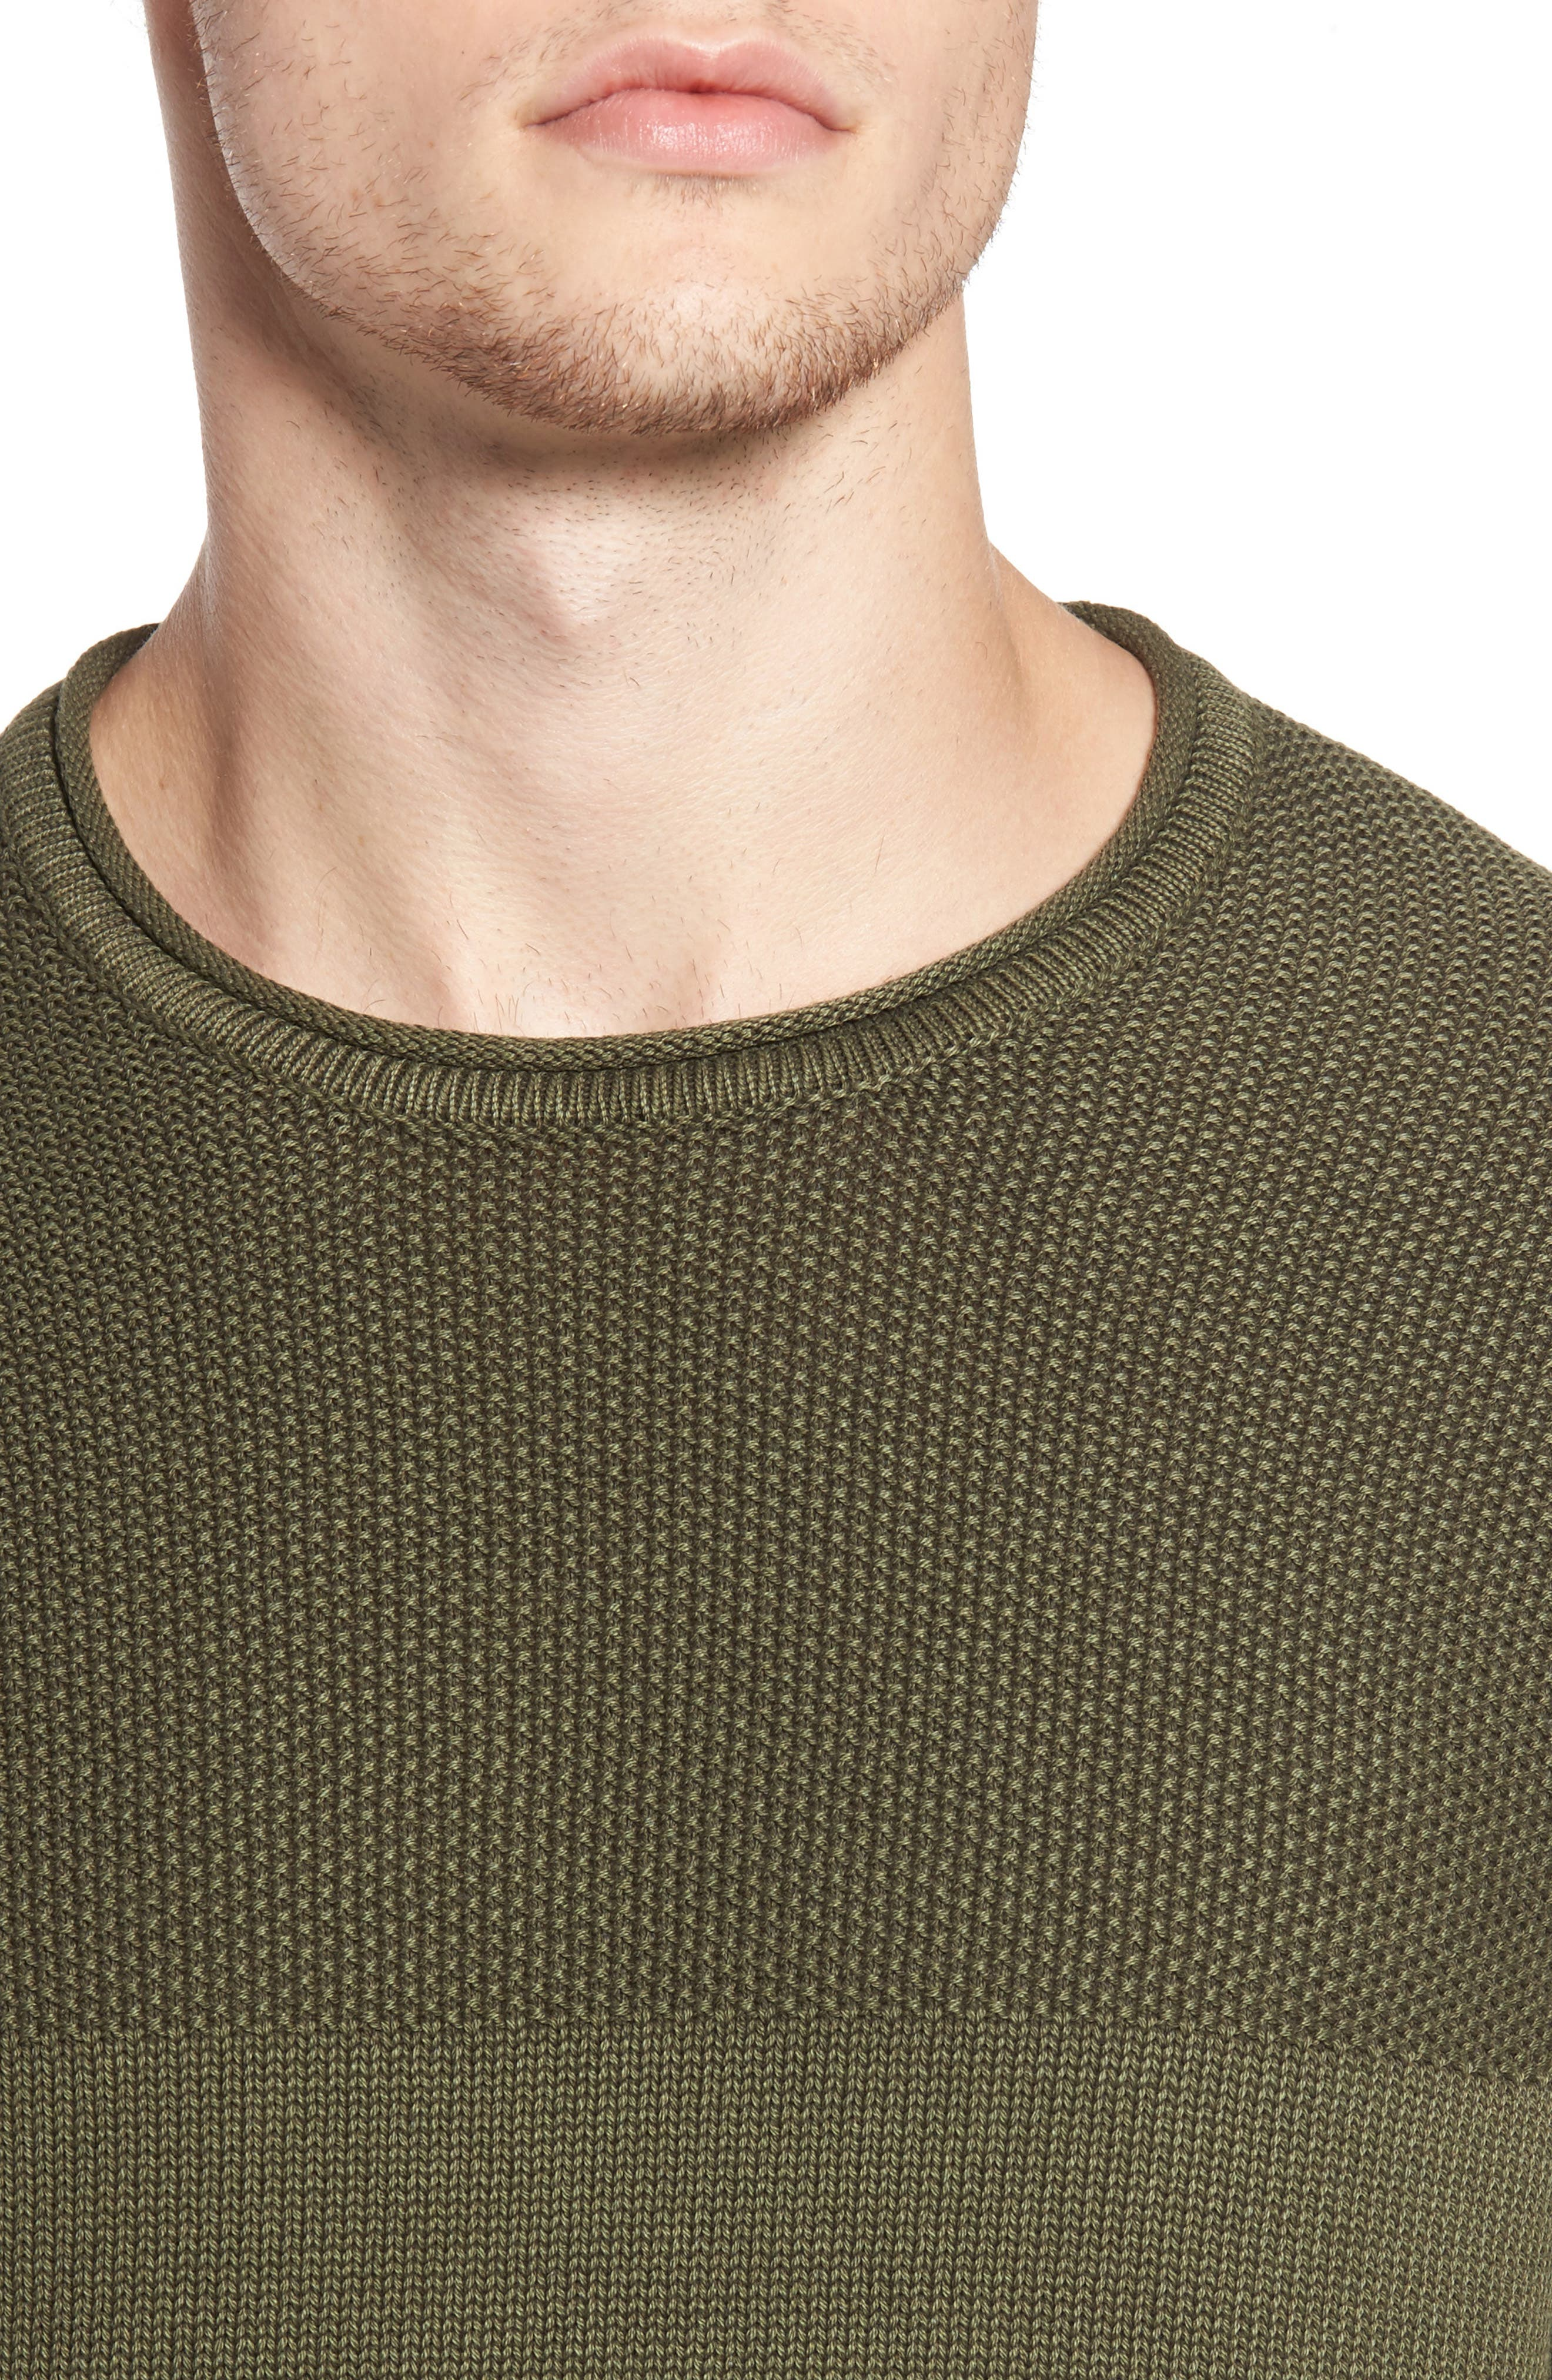 Sun Faded Sweater,                             Alternate thumbnail 7, color,